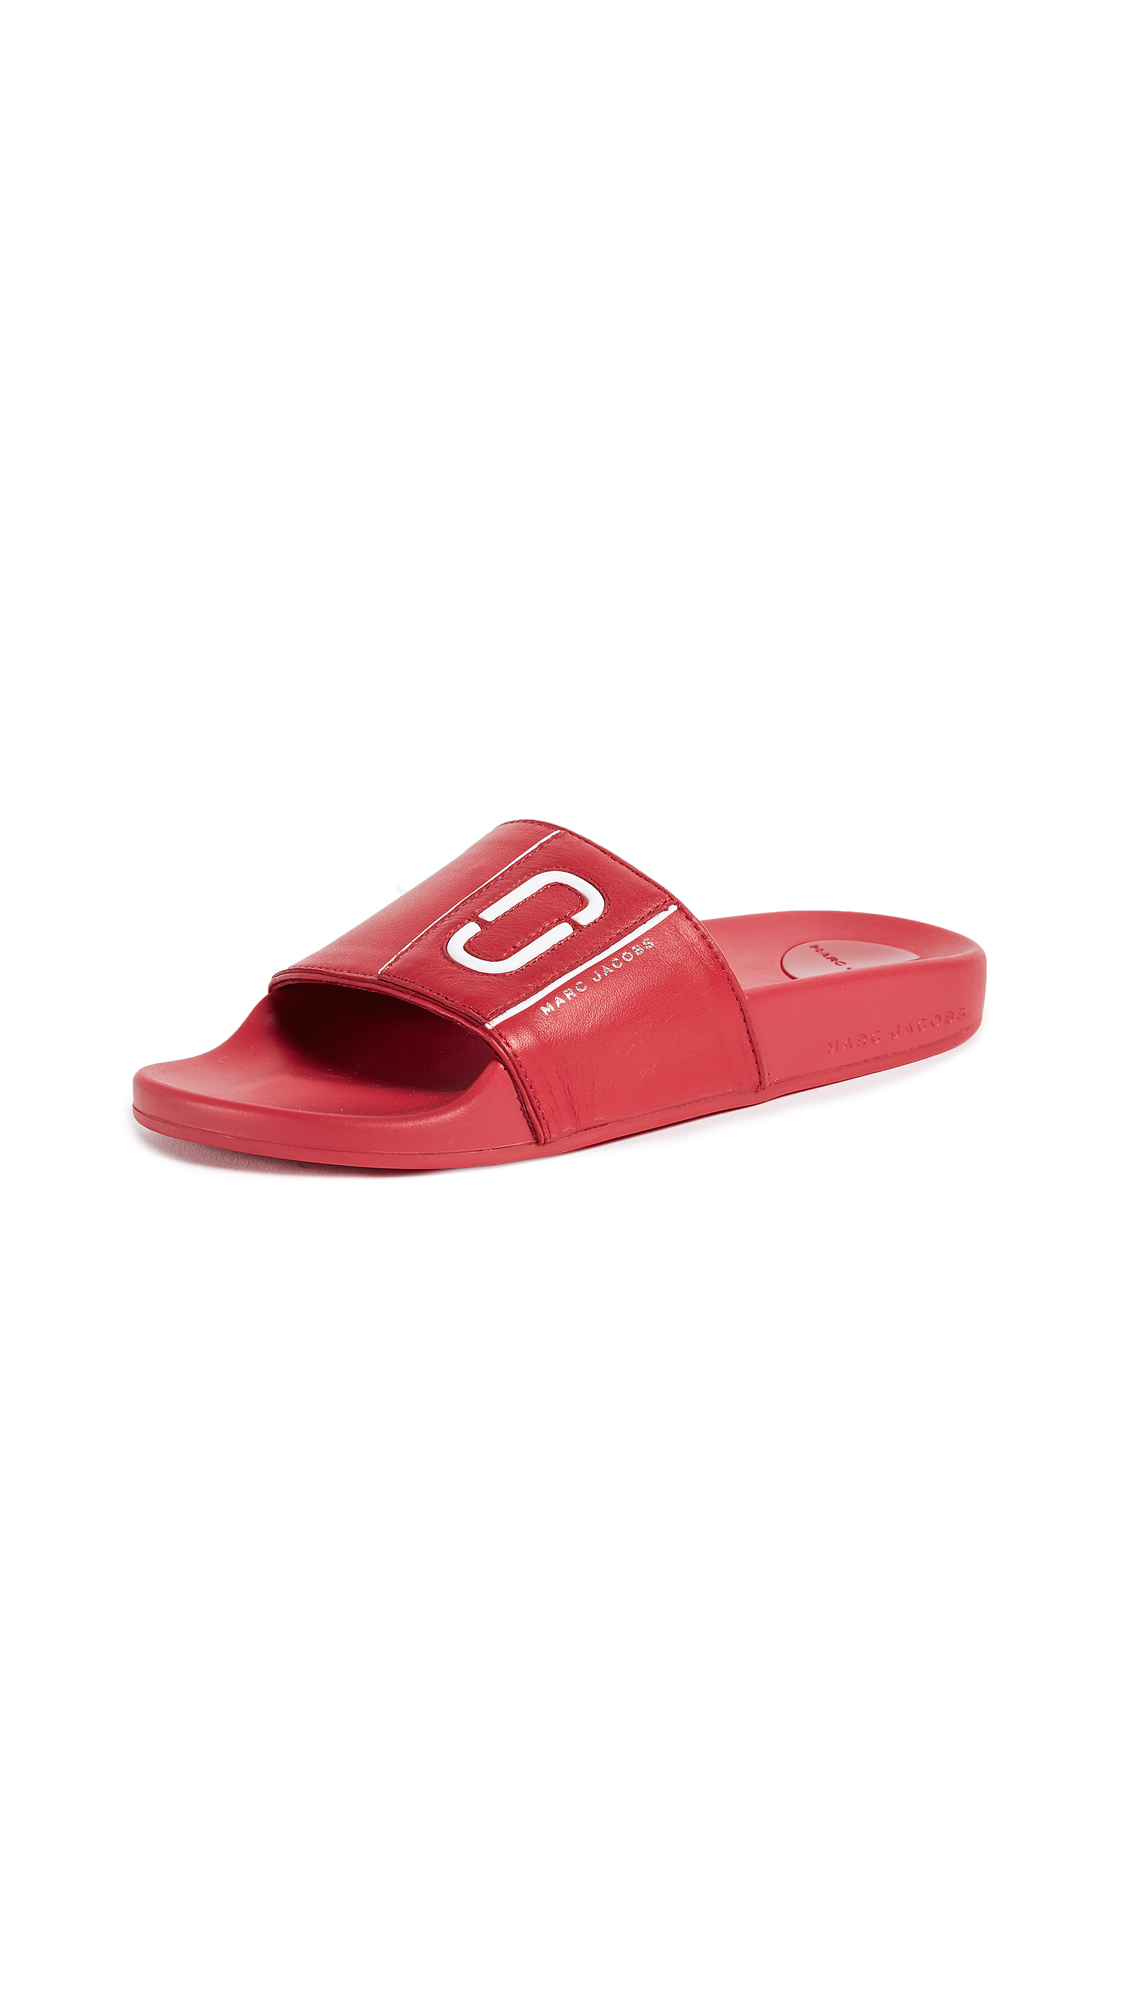 Marc Jacobs Cooper Sport Slides - Red